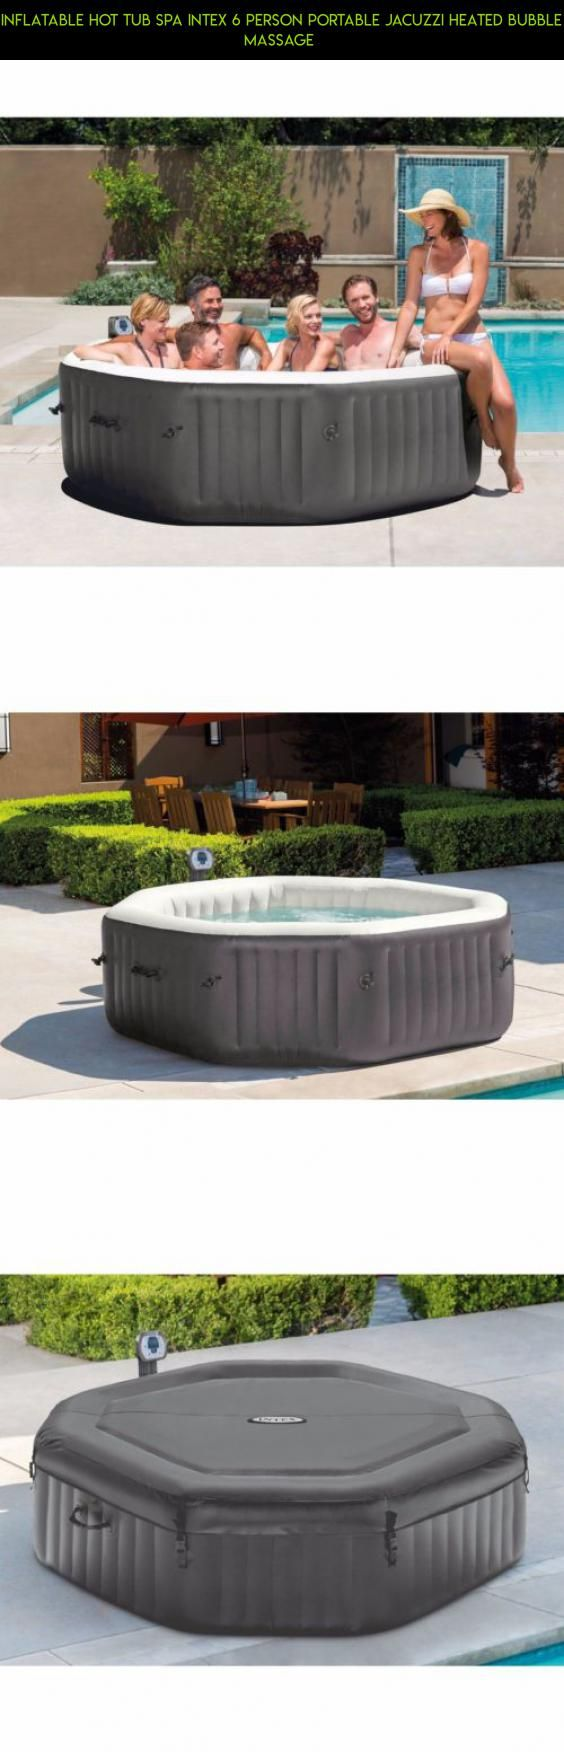 inflatable hot tub spa intex person portable jacuzzi heated bubble massage shopping drone